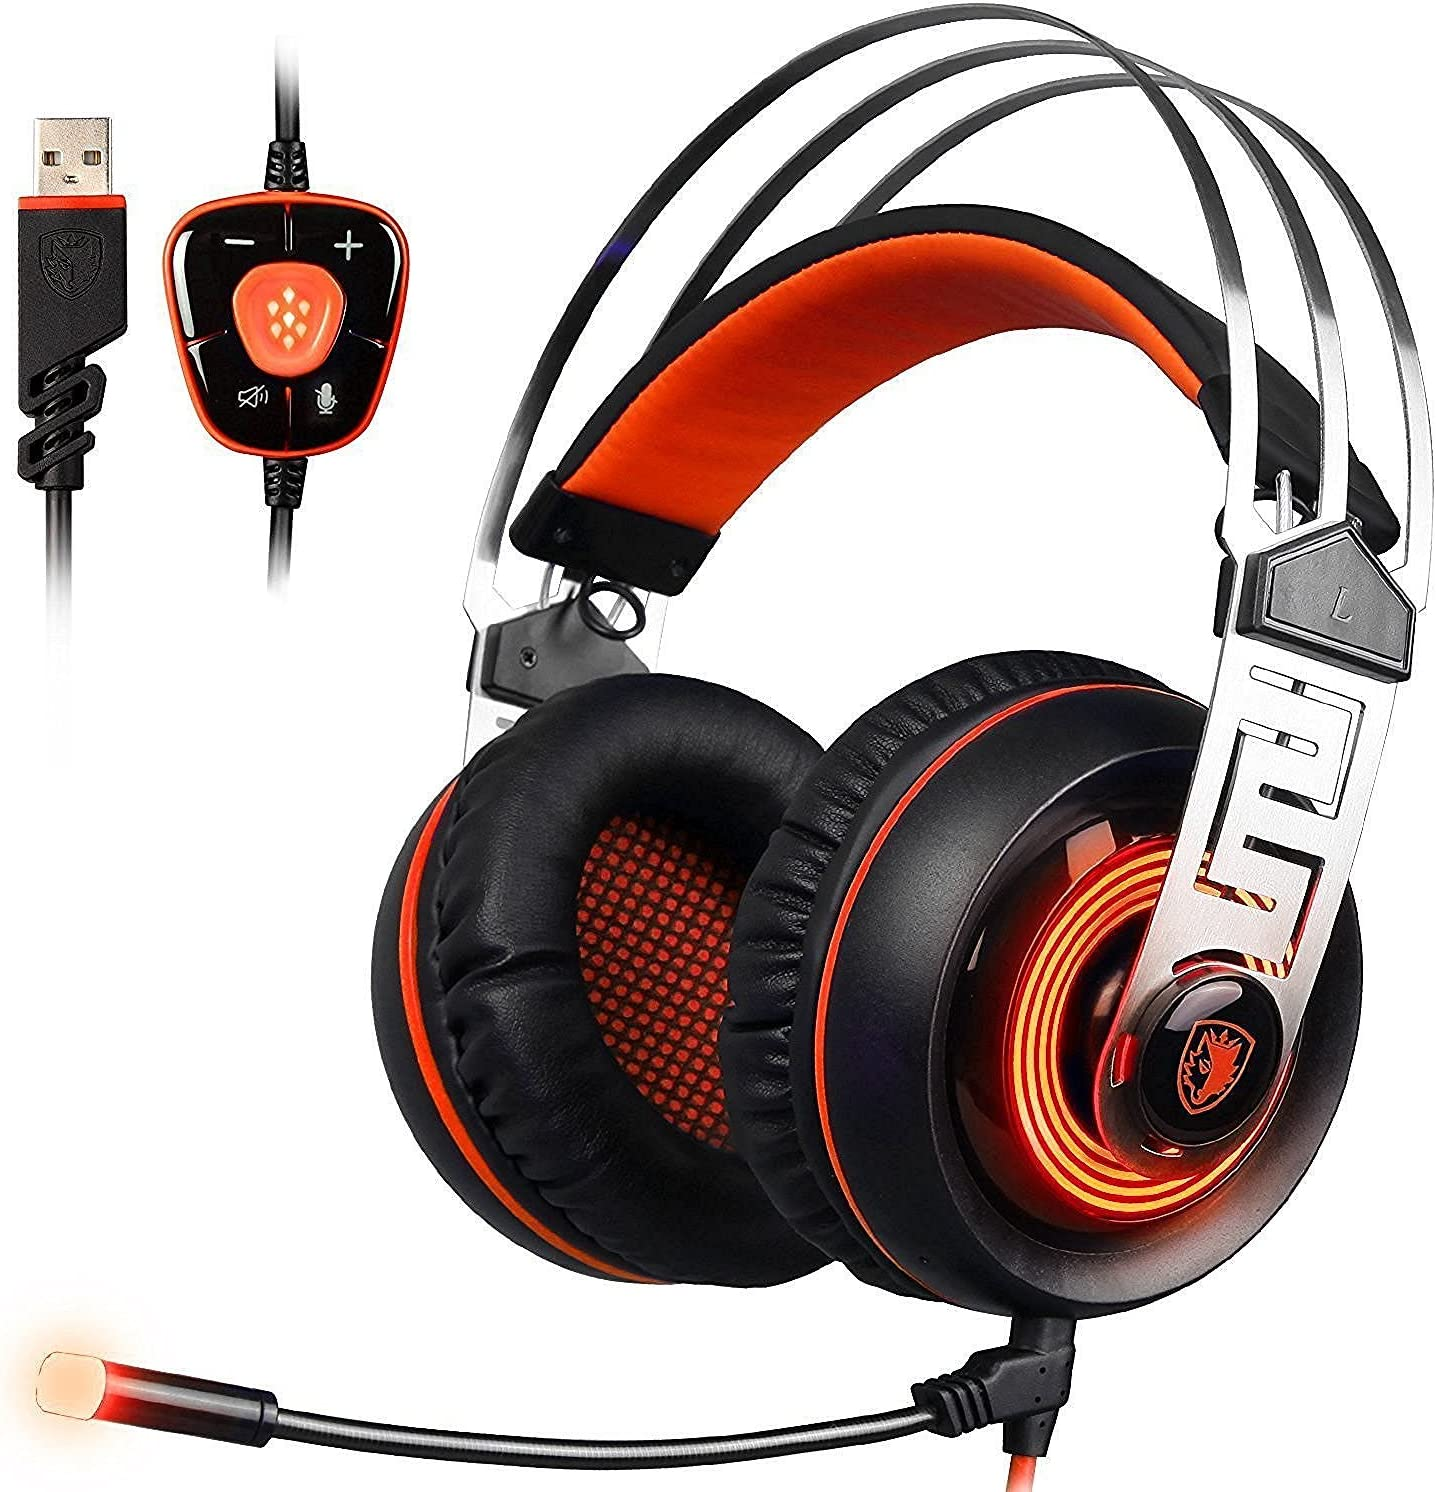 SADES A7 USB 7.1 Surround Sound Professional Stereo Gaming Headphone Video Led Lighting Headsets with Microphone for Laptop PC (Orange)